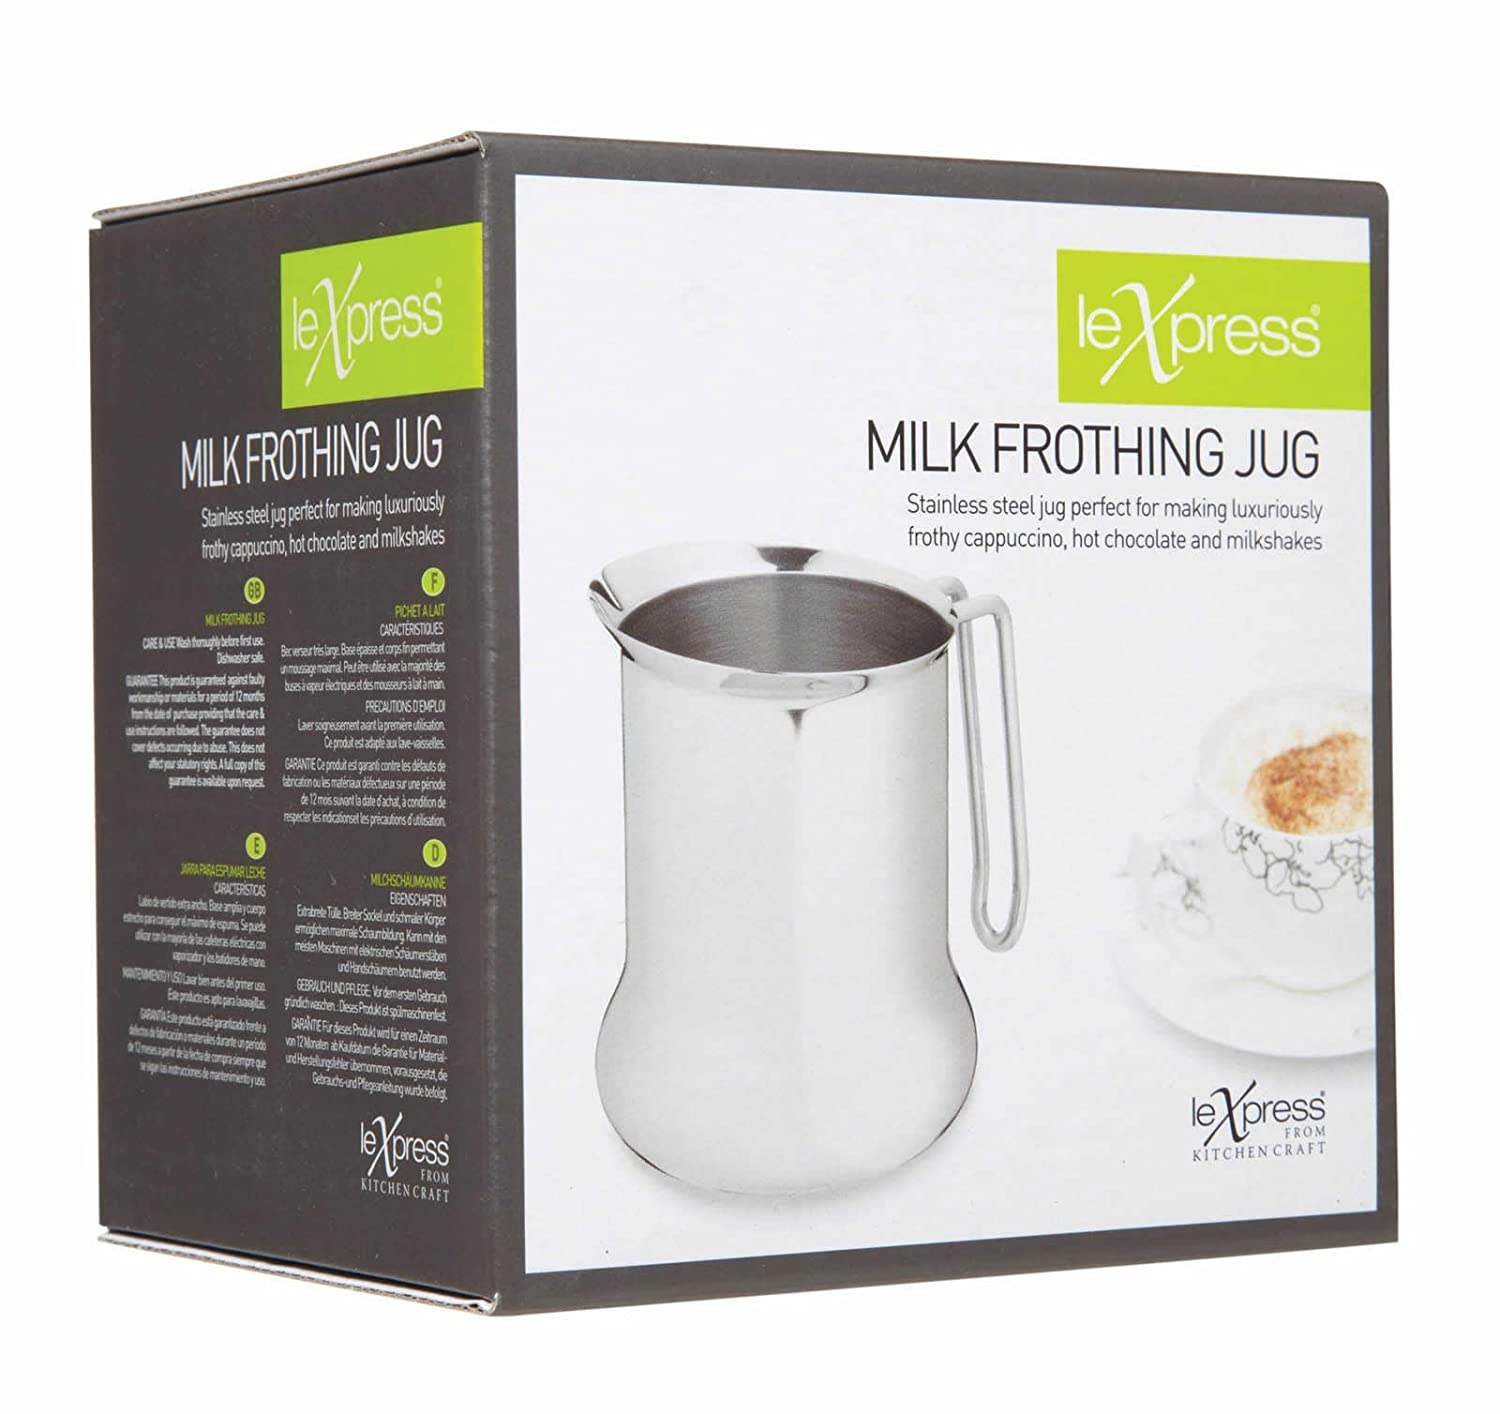 Kitchen Craft 650 ml Le Xpress Milk Frothing Jug, Stainless Steel, Silver, 9 x 12 x 16 cm Brandcentre KCLEJUG